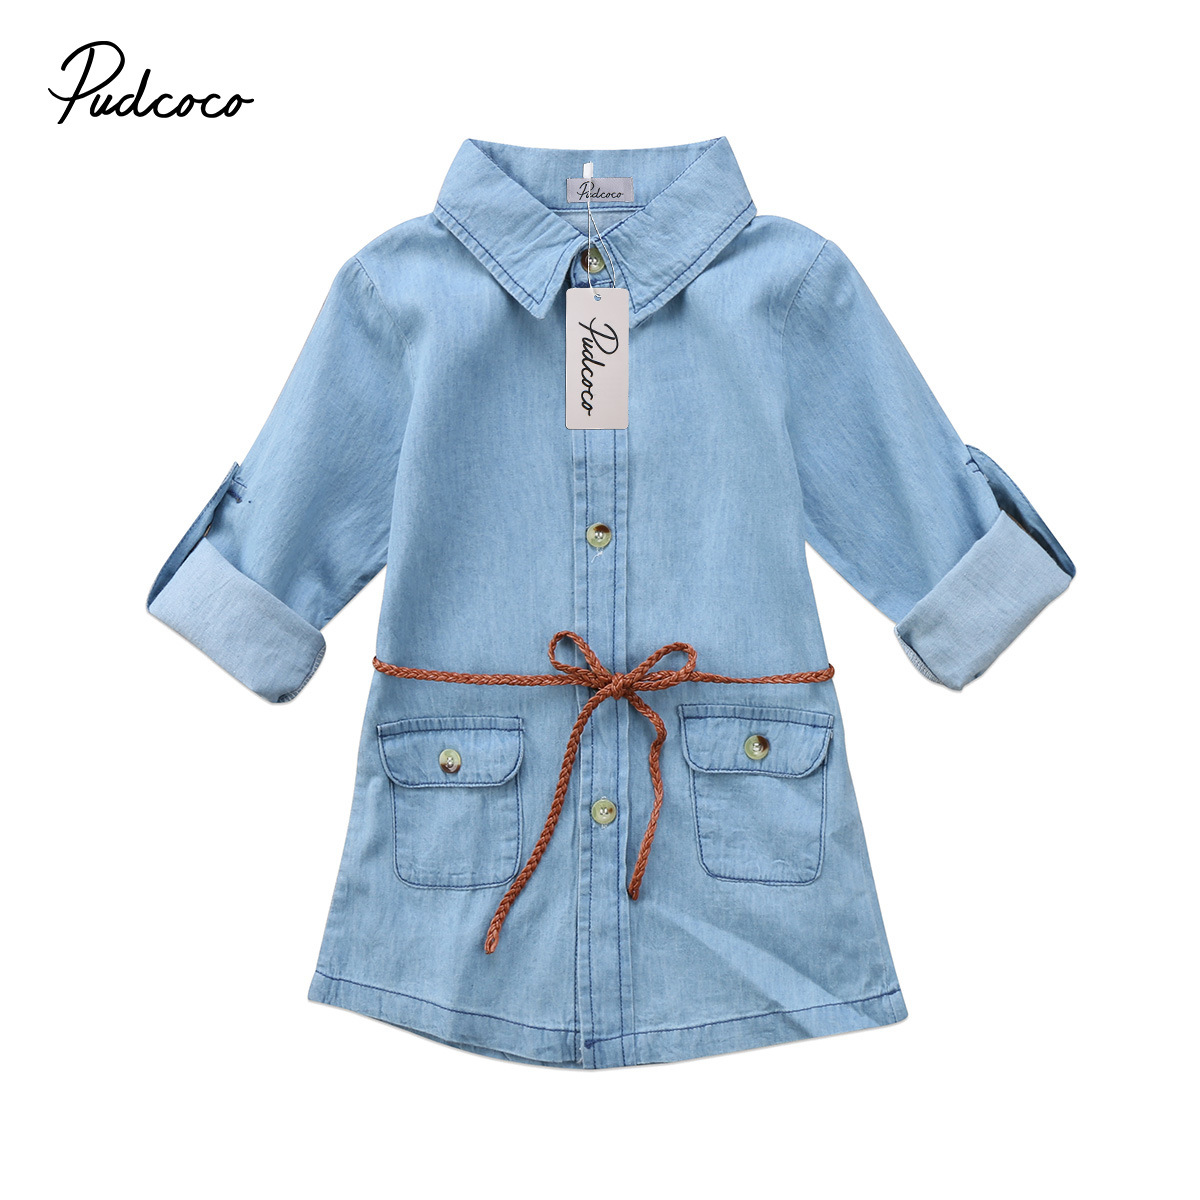 2018 Brand New Infant Child Kids Girl Denim Dress Jeans Pocket Long Sleeve T-shirt Loose Shirt Mini Dress Fashion Clothes 2-7T luxury good quality new fashion women zipper jumpsuit slim fit skinny jeans rompers pocket denim jumpsuits size sexy girl casual